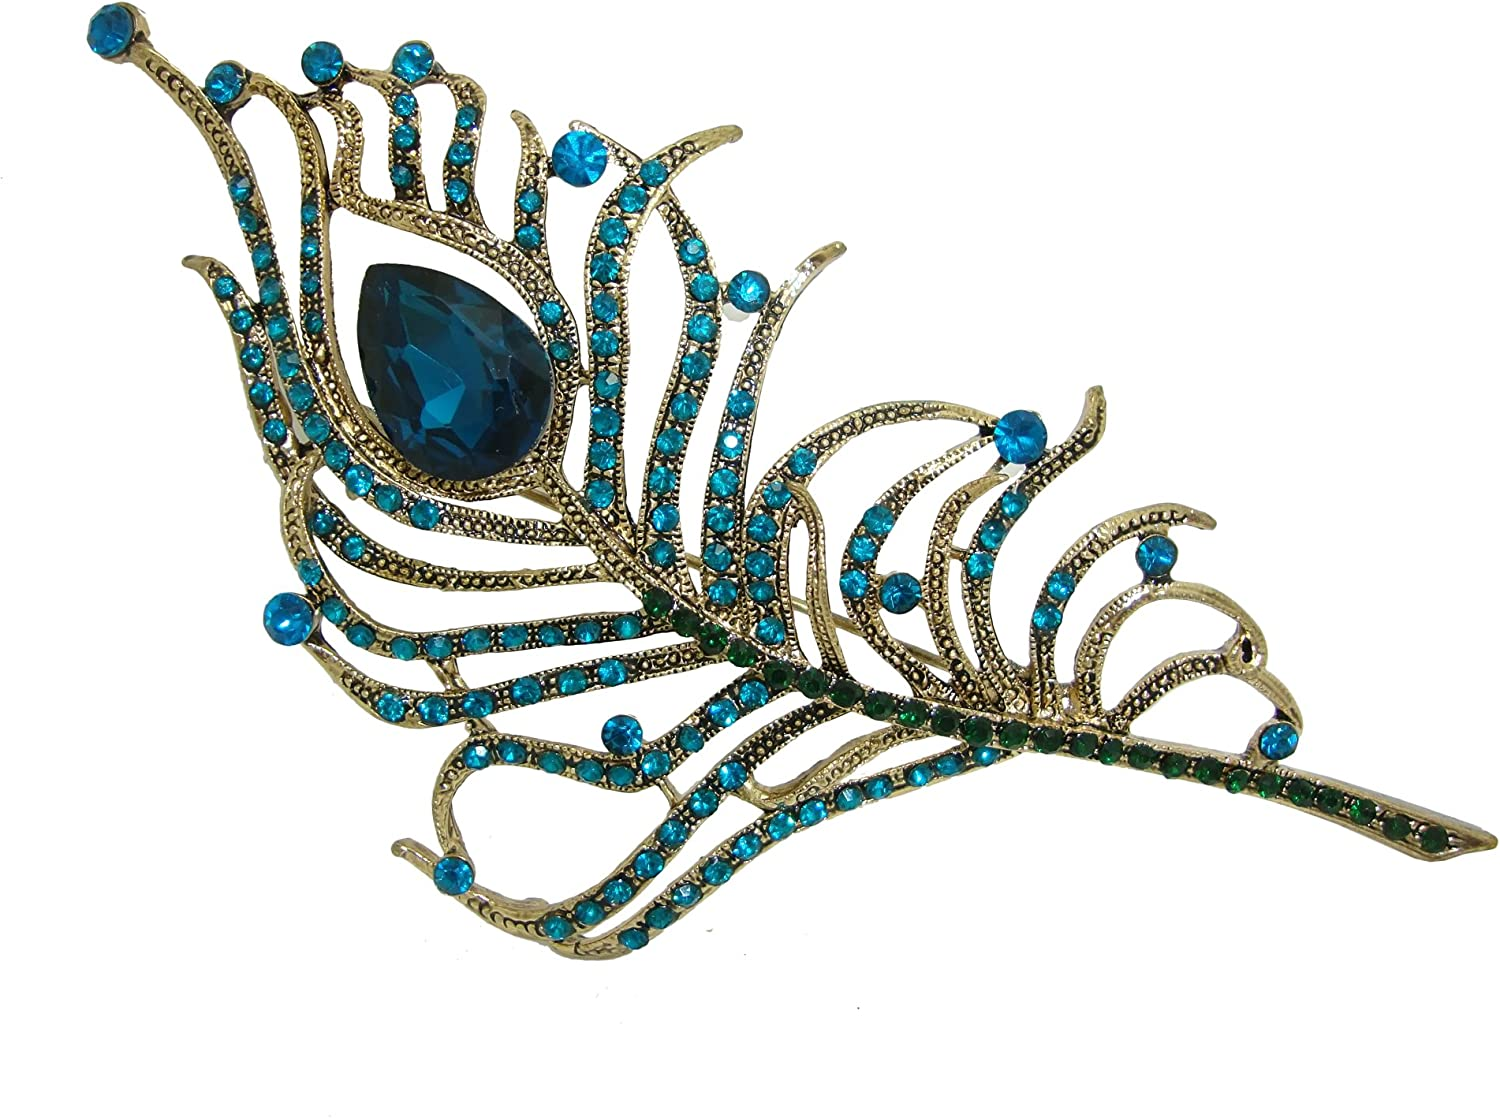 TTjewelry Gorgeous Peacock Feathers Rhinestone Crystal Brooch Ranking TOP12 Ranking TOP20 Pi